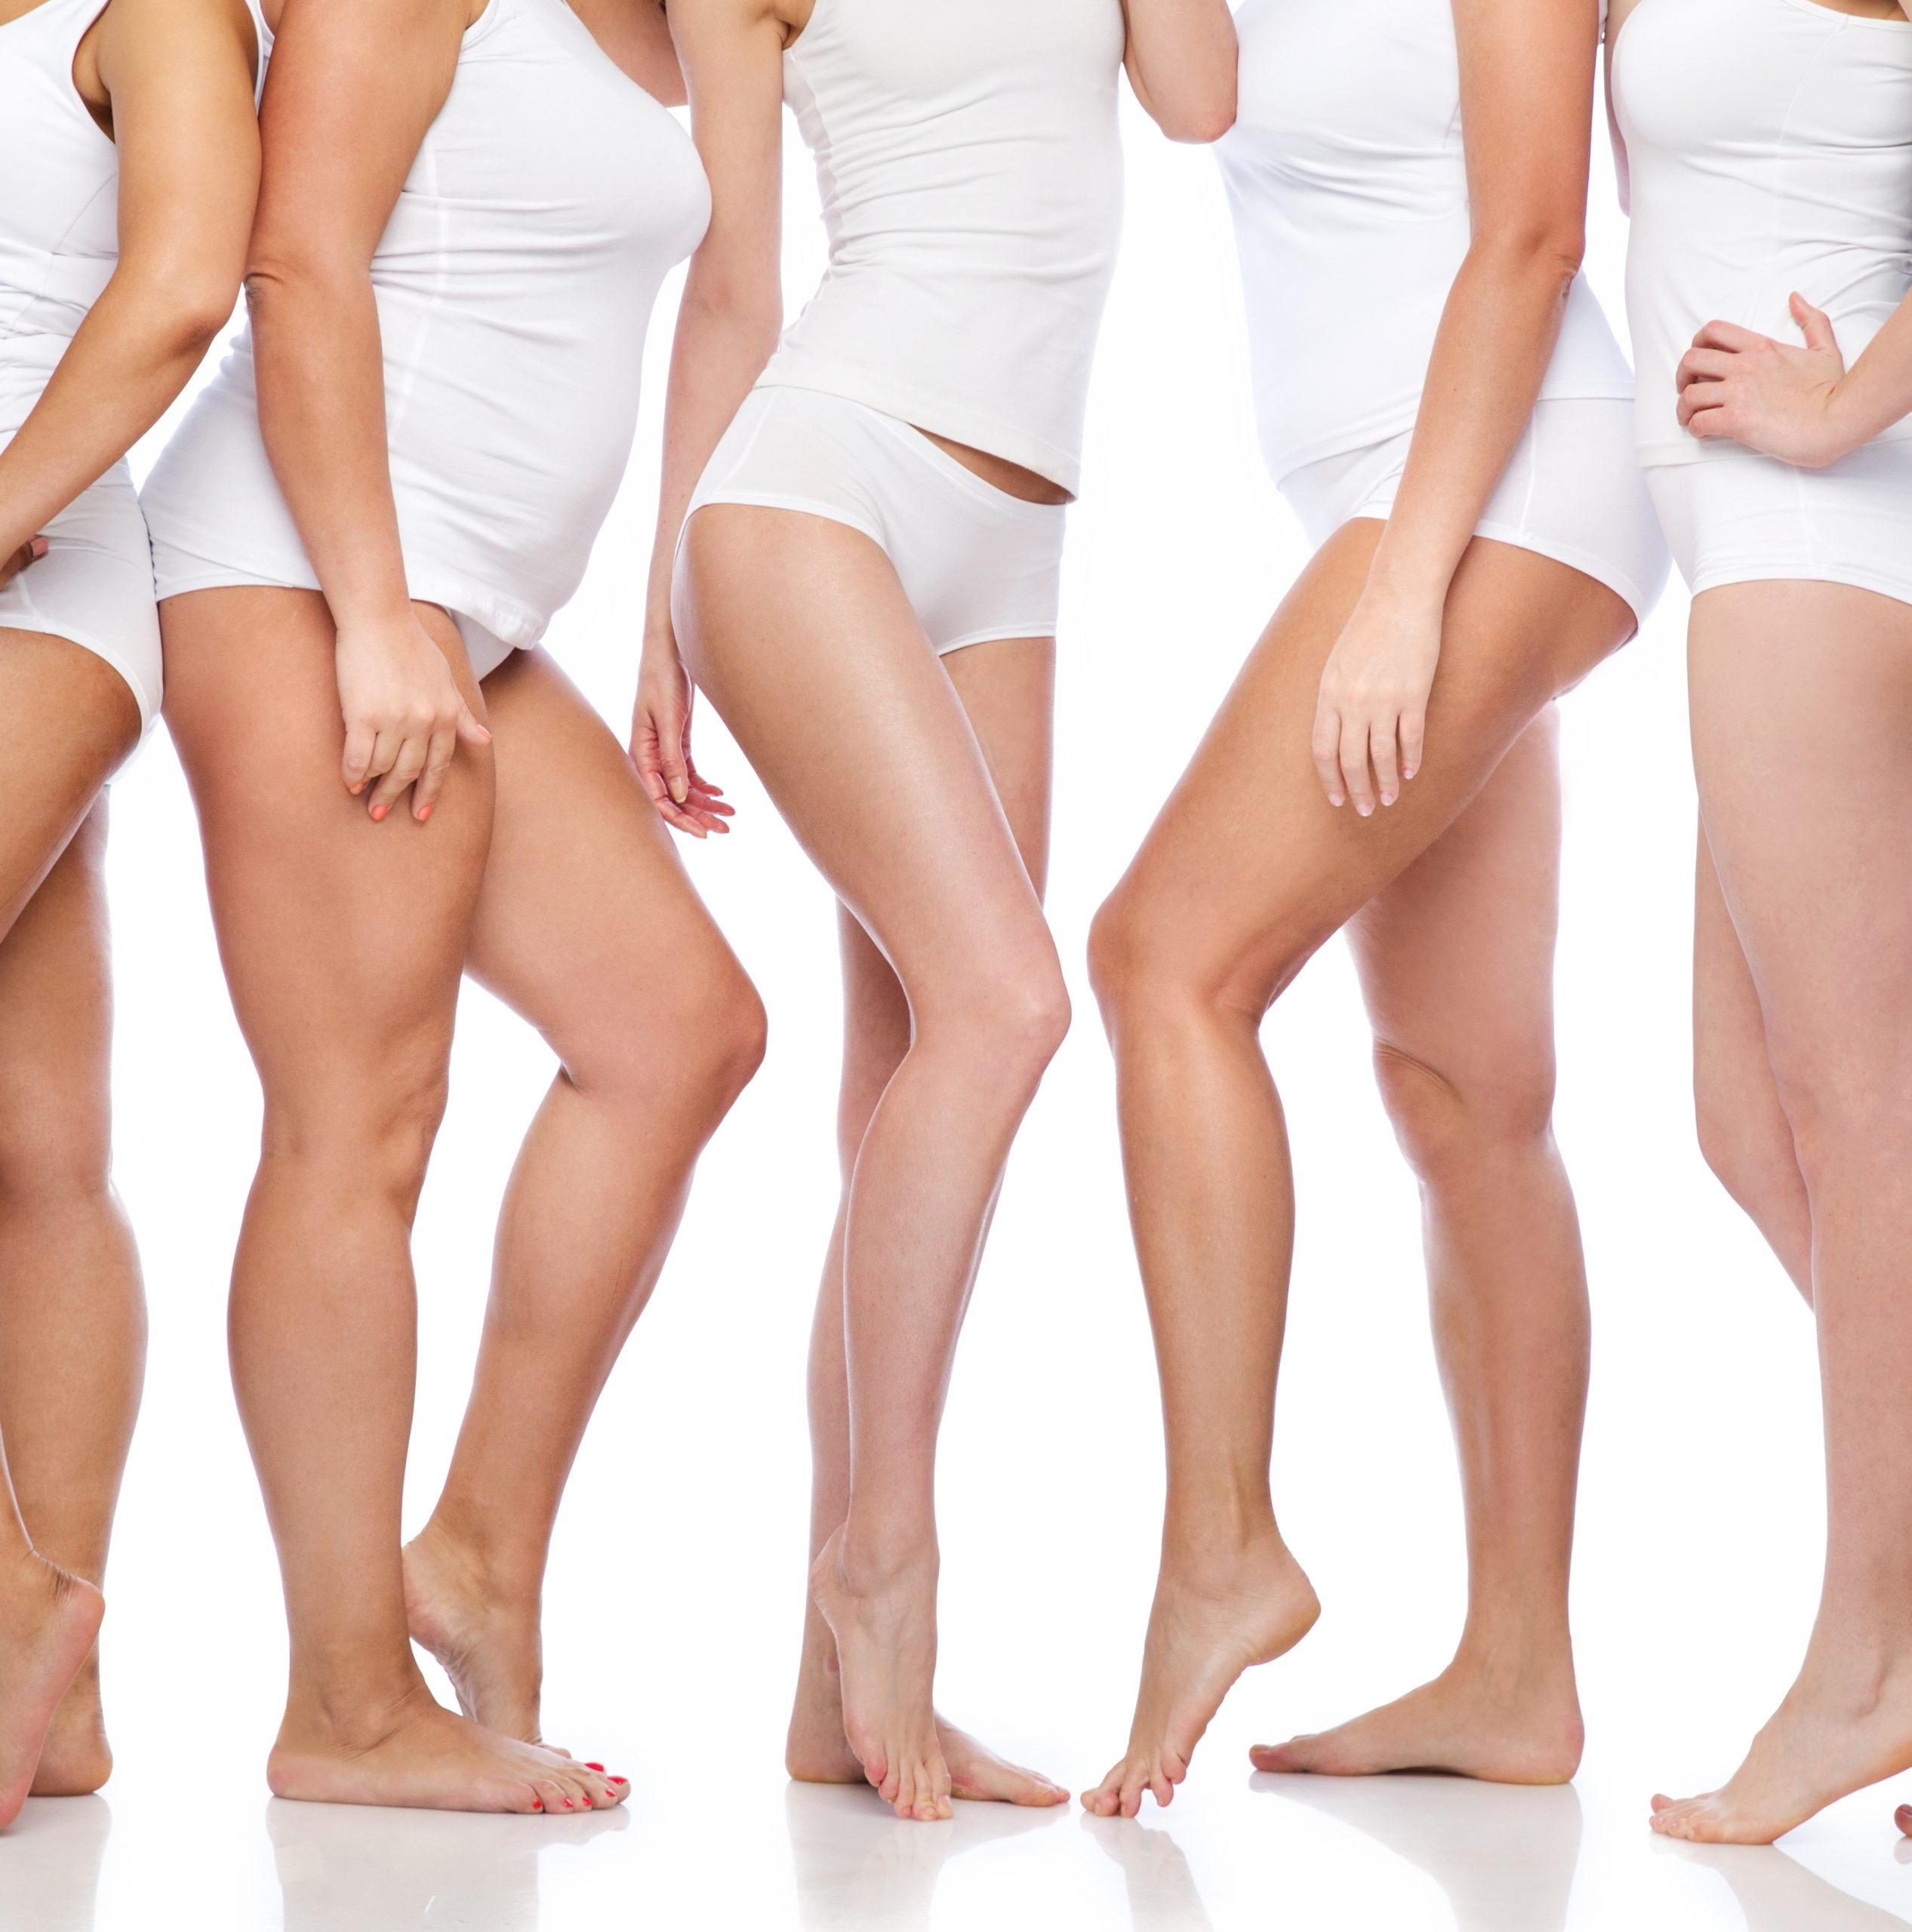 Colour Me Bronze Tans for all sizes